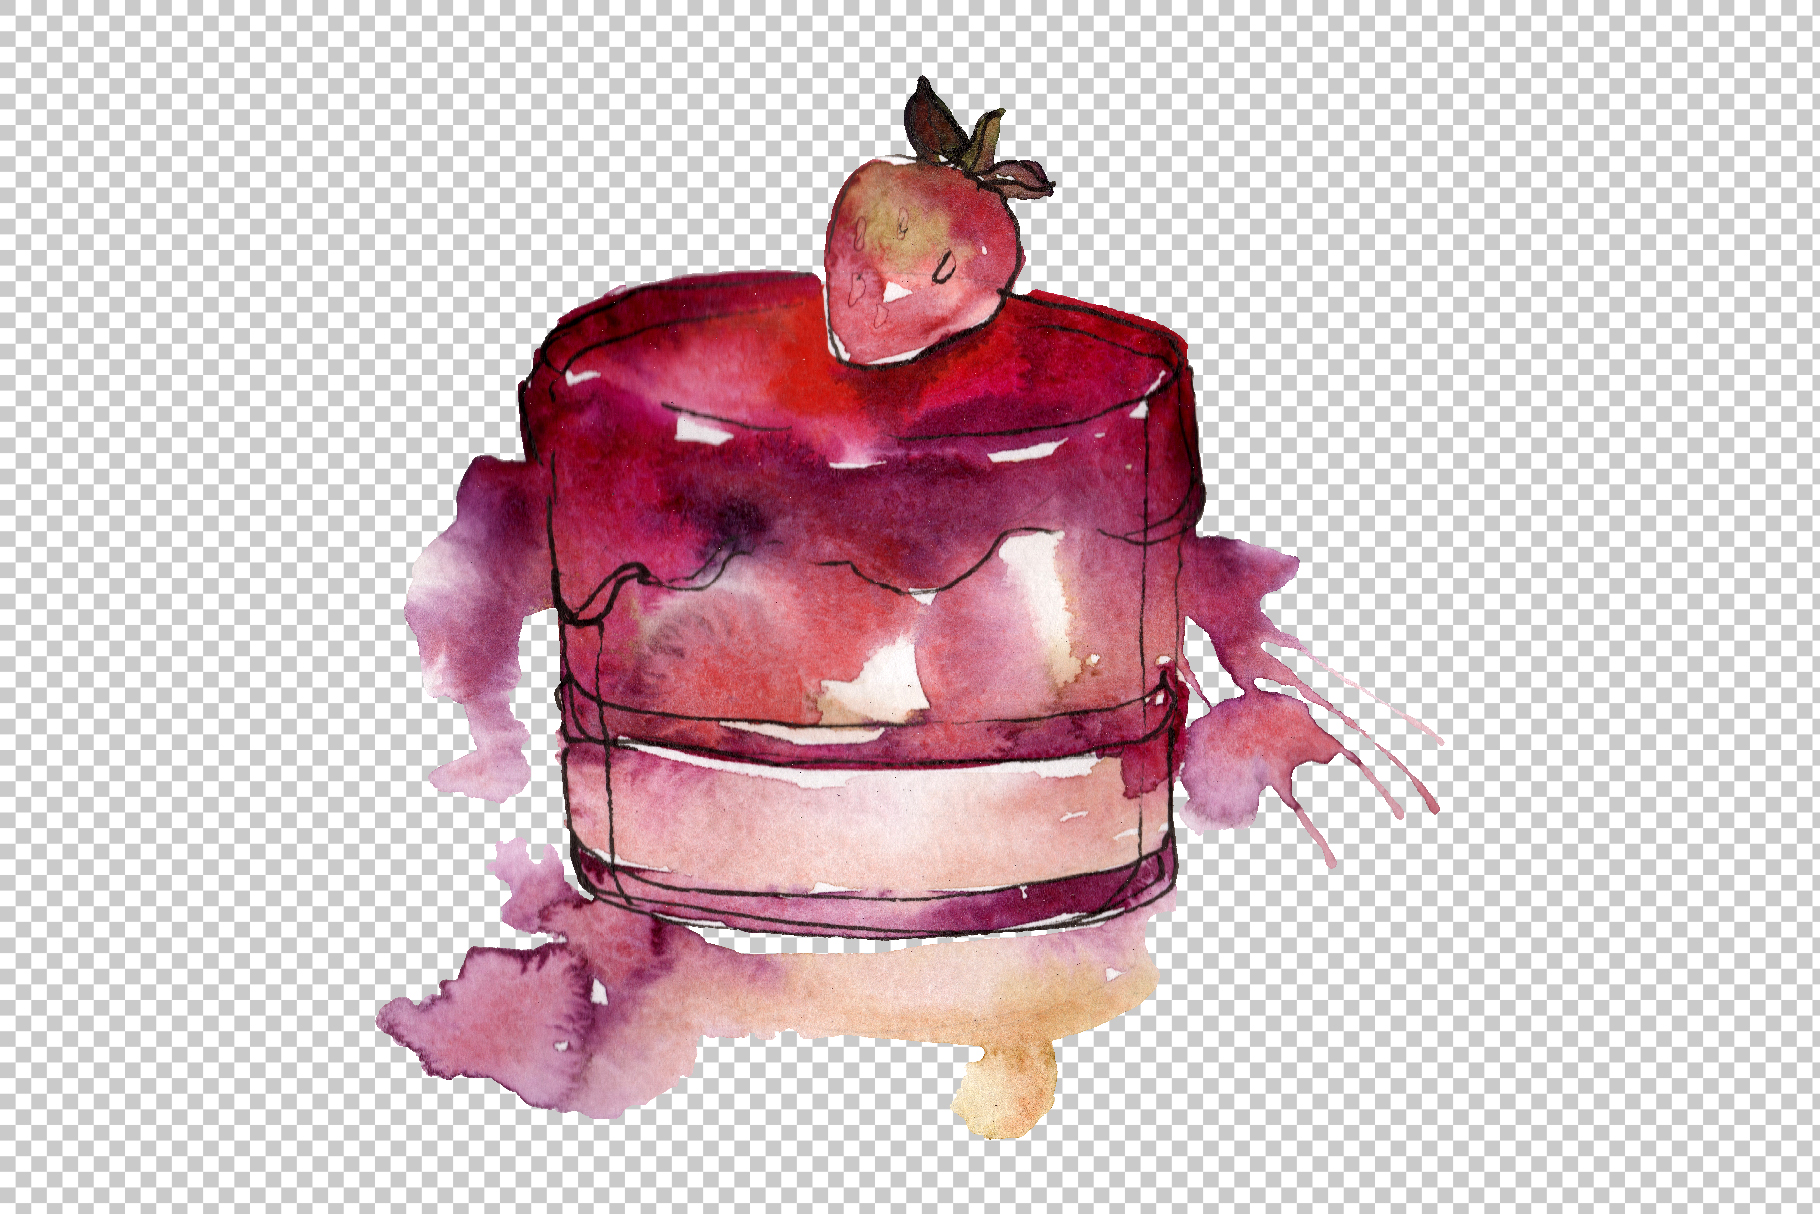 Dessert Love story Watercolor png example image 6